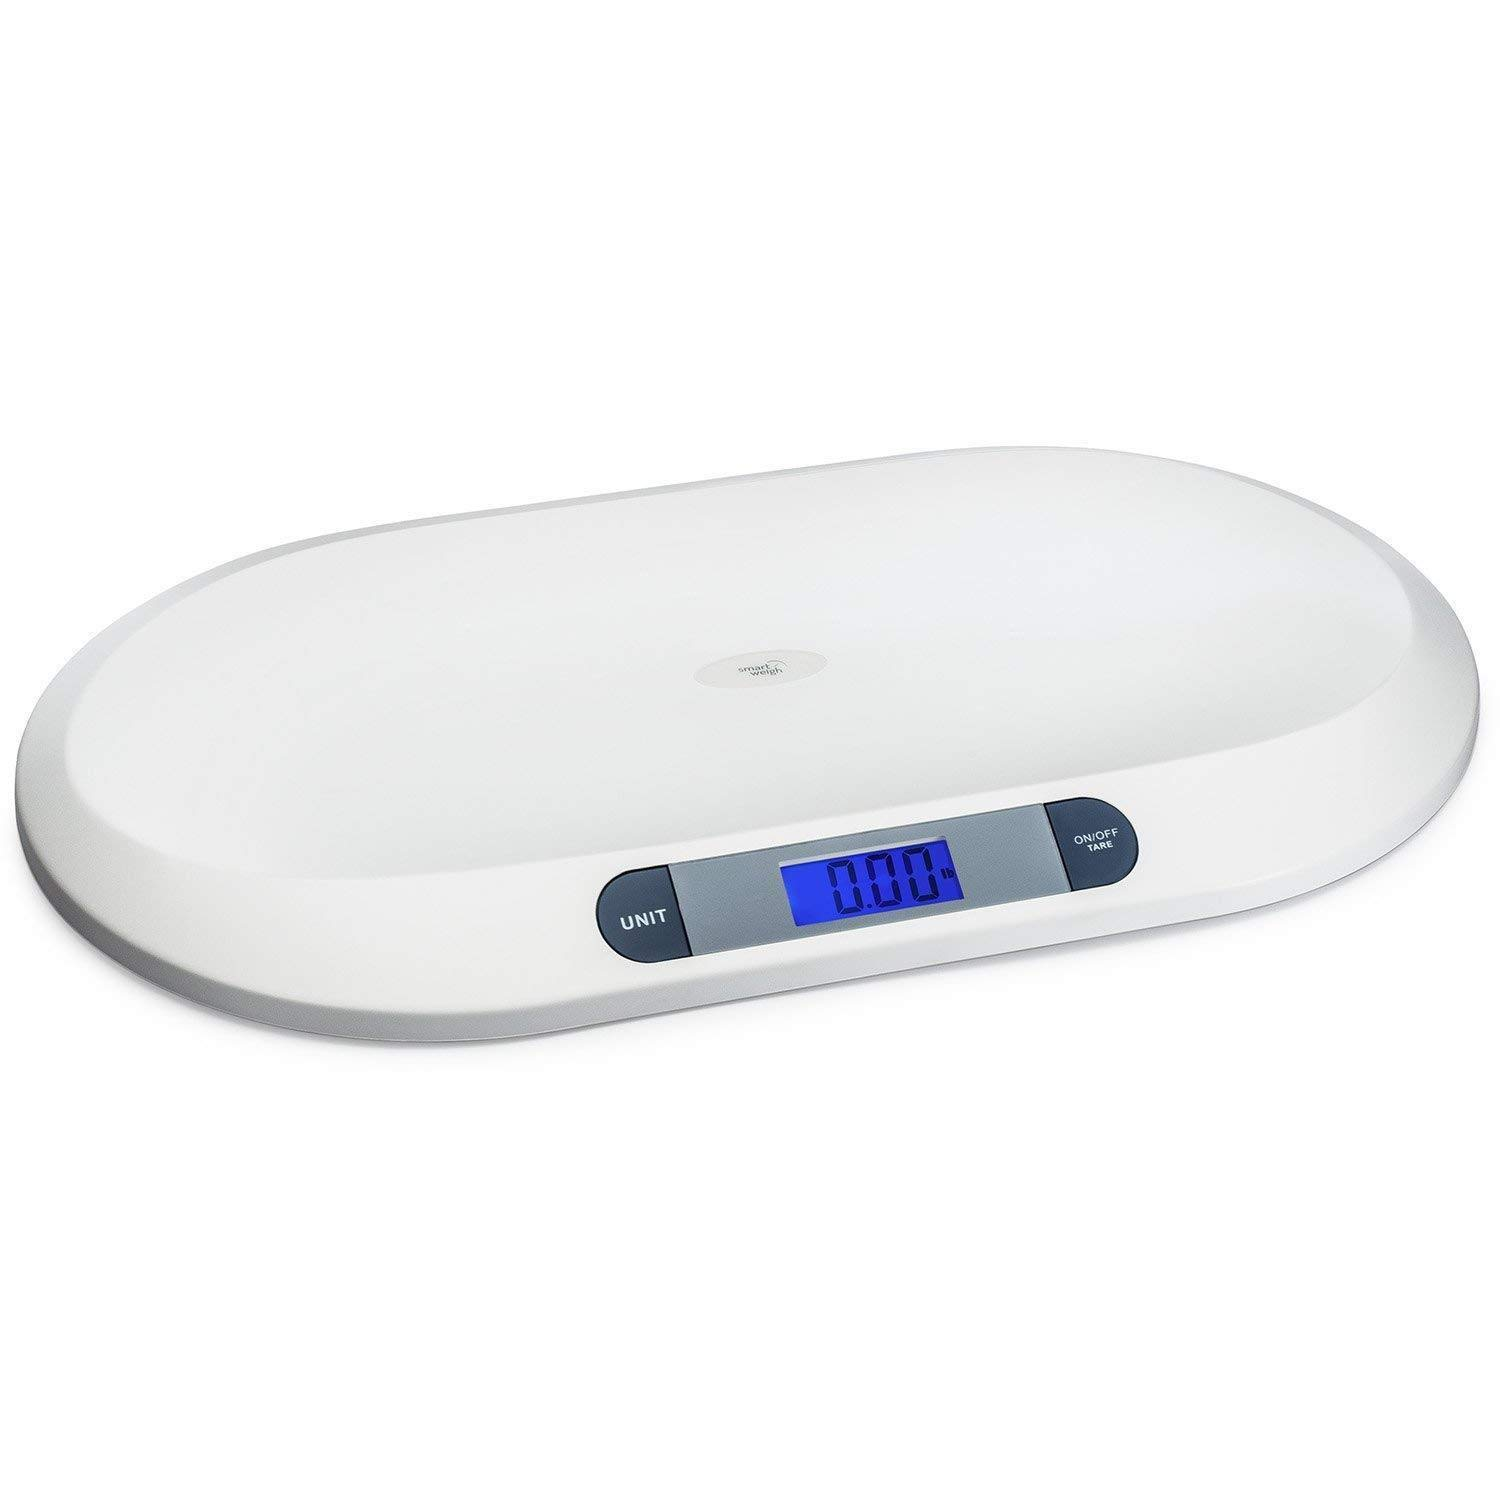 Baby Weighing Scale, Digital Baby Scale Measure Infant/Baby/Pet Weight Accurately,MAX 20KG/44pounds, Precision of 10g, Large LCD Display, Length 55cm (White)